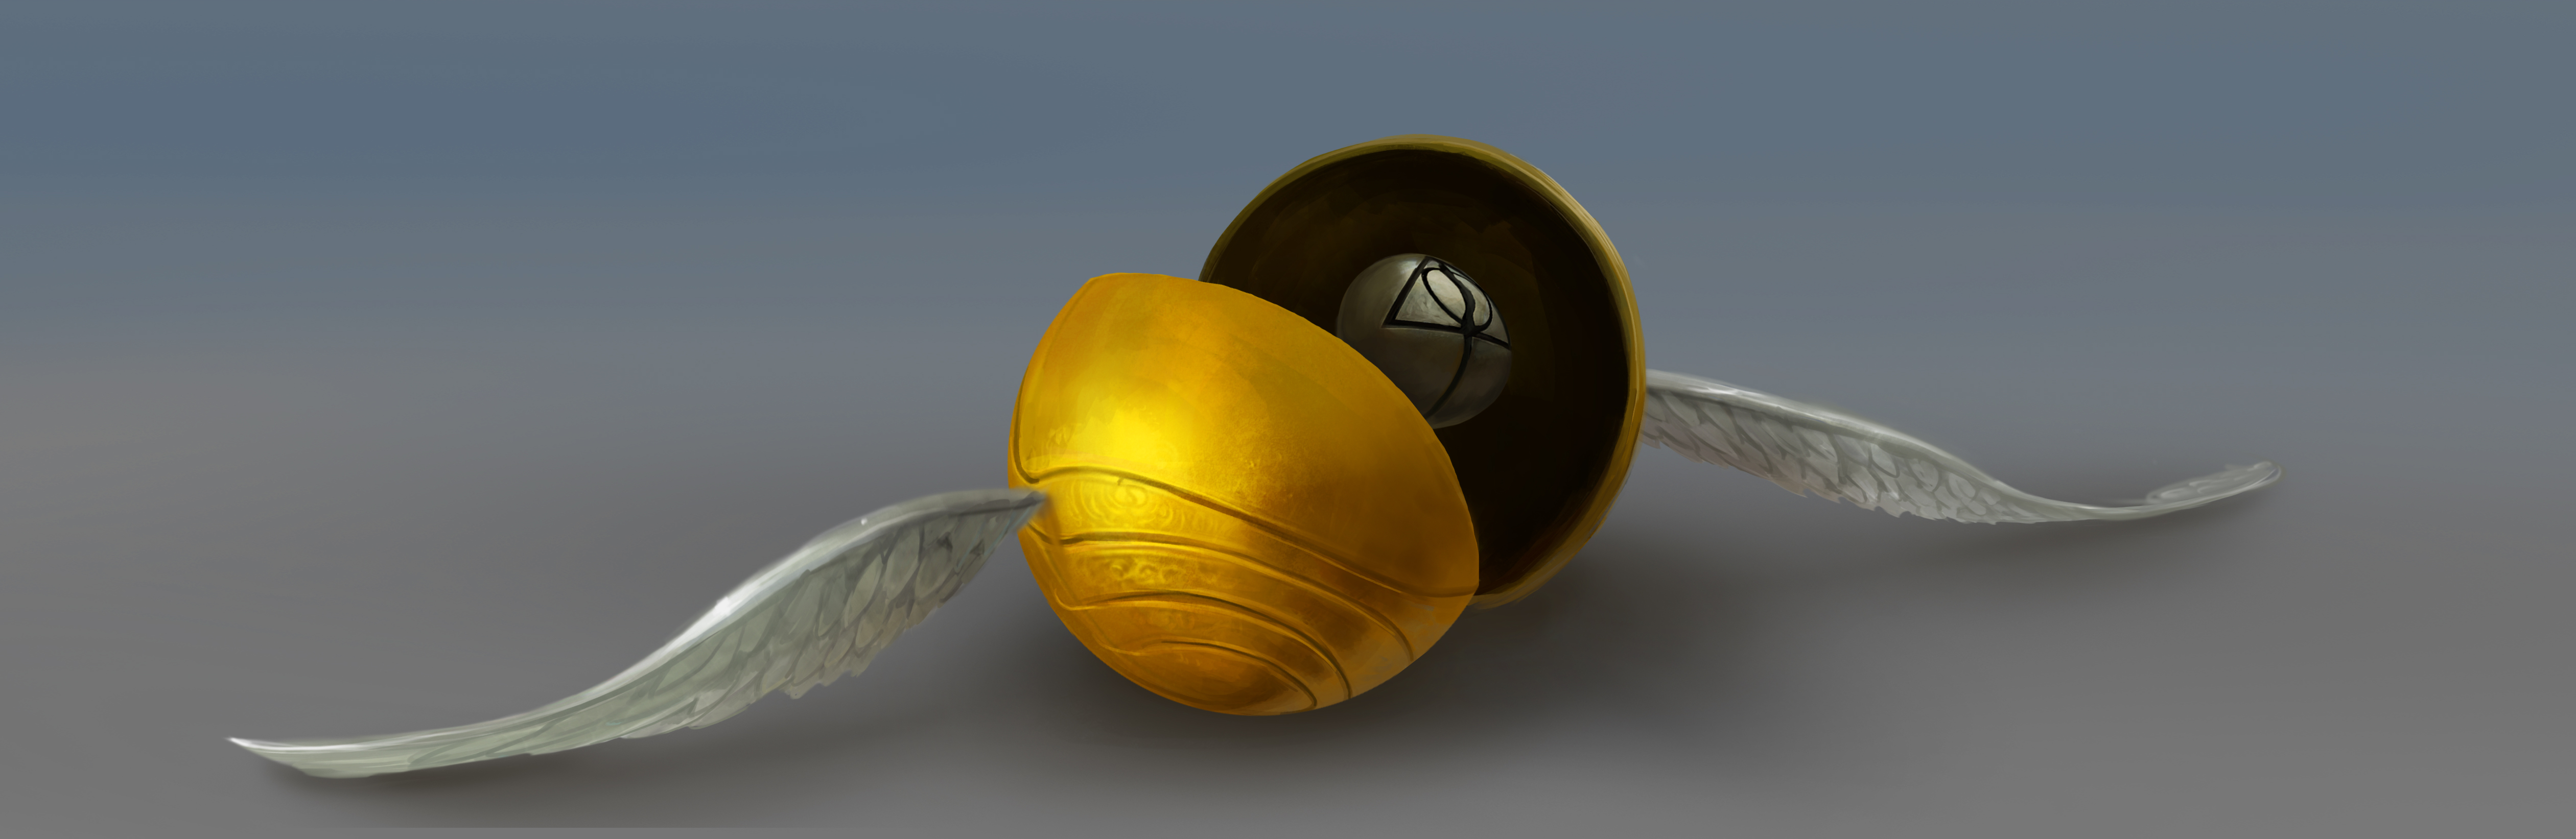 An open Golden Snitch, revealing the Resurrection Stone inside